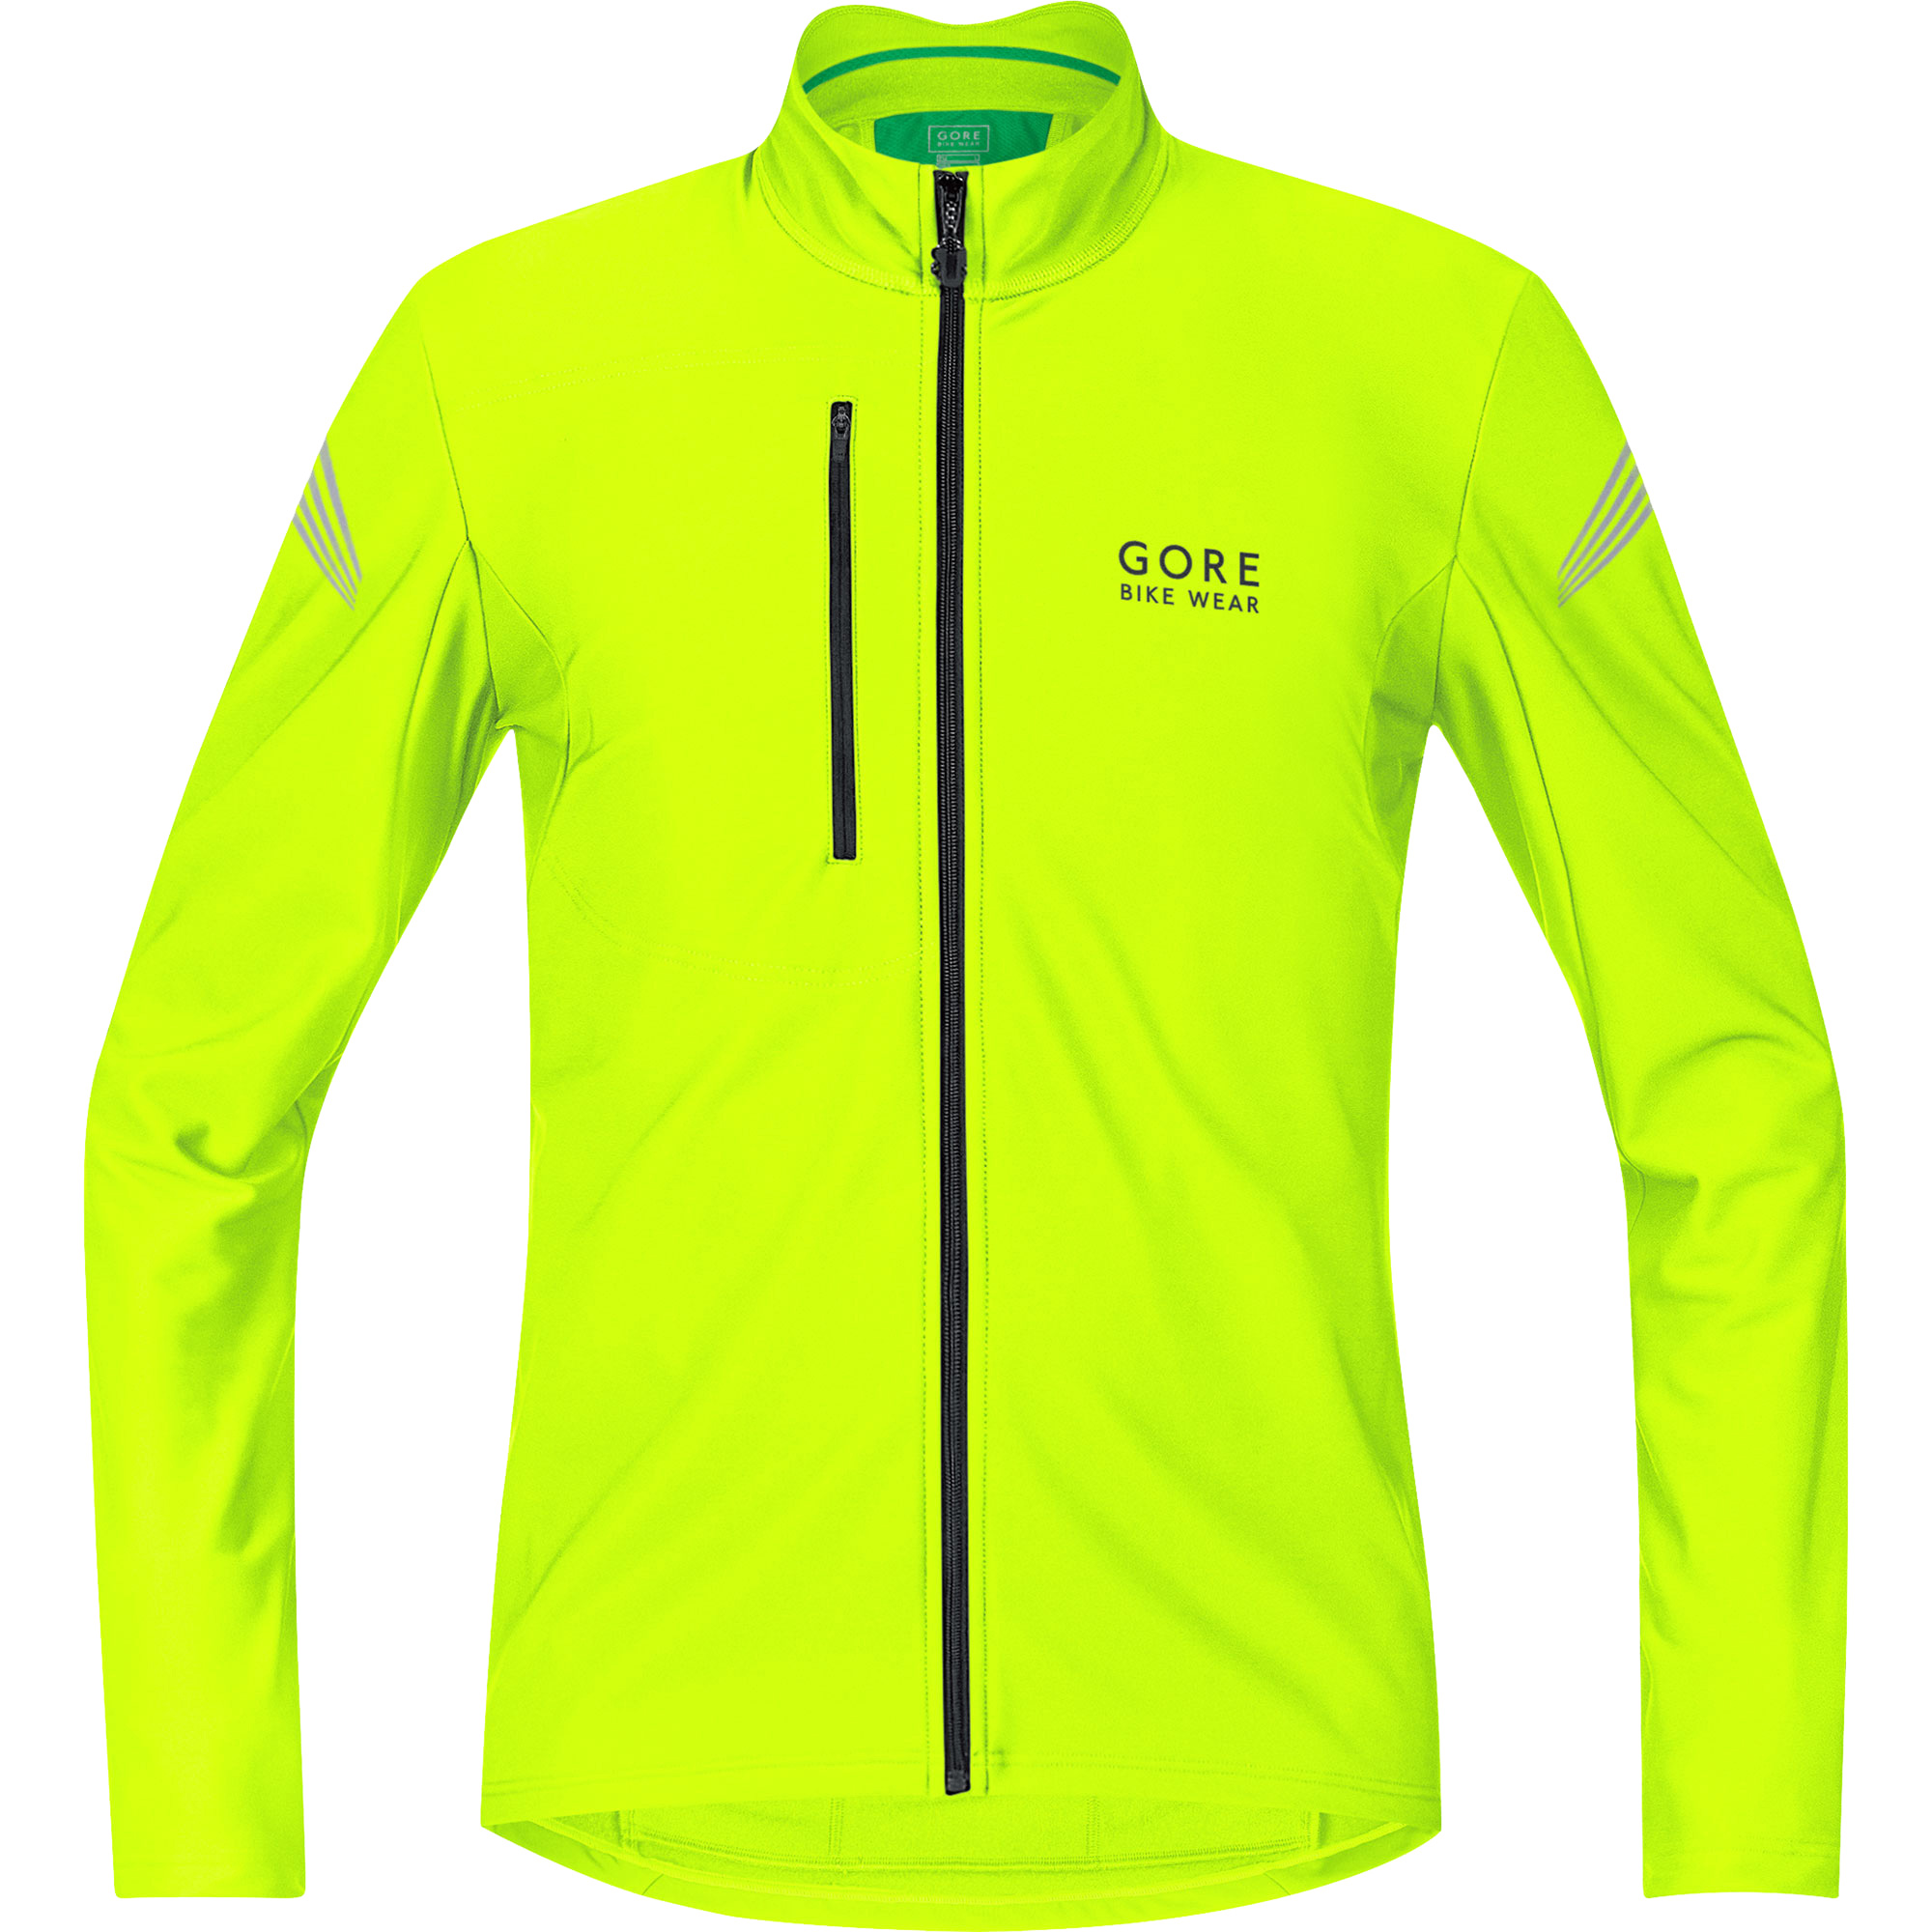 Maillot GORE BIKE WEAR ELEMENT THERMO Mangas largas Amarillo fluorescente